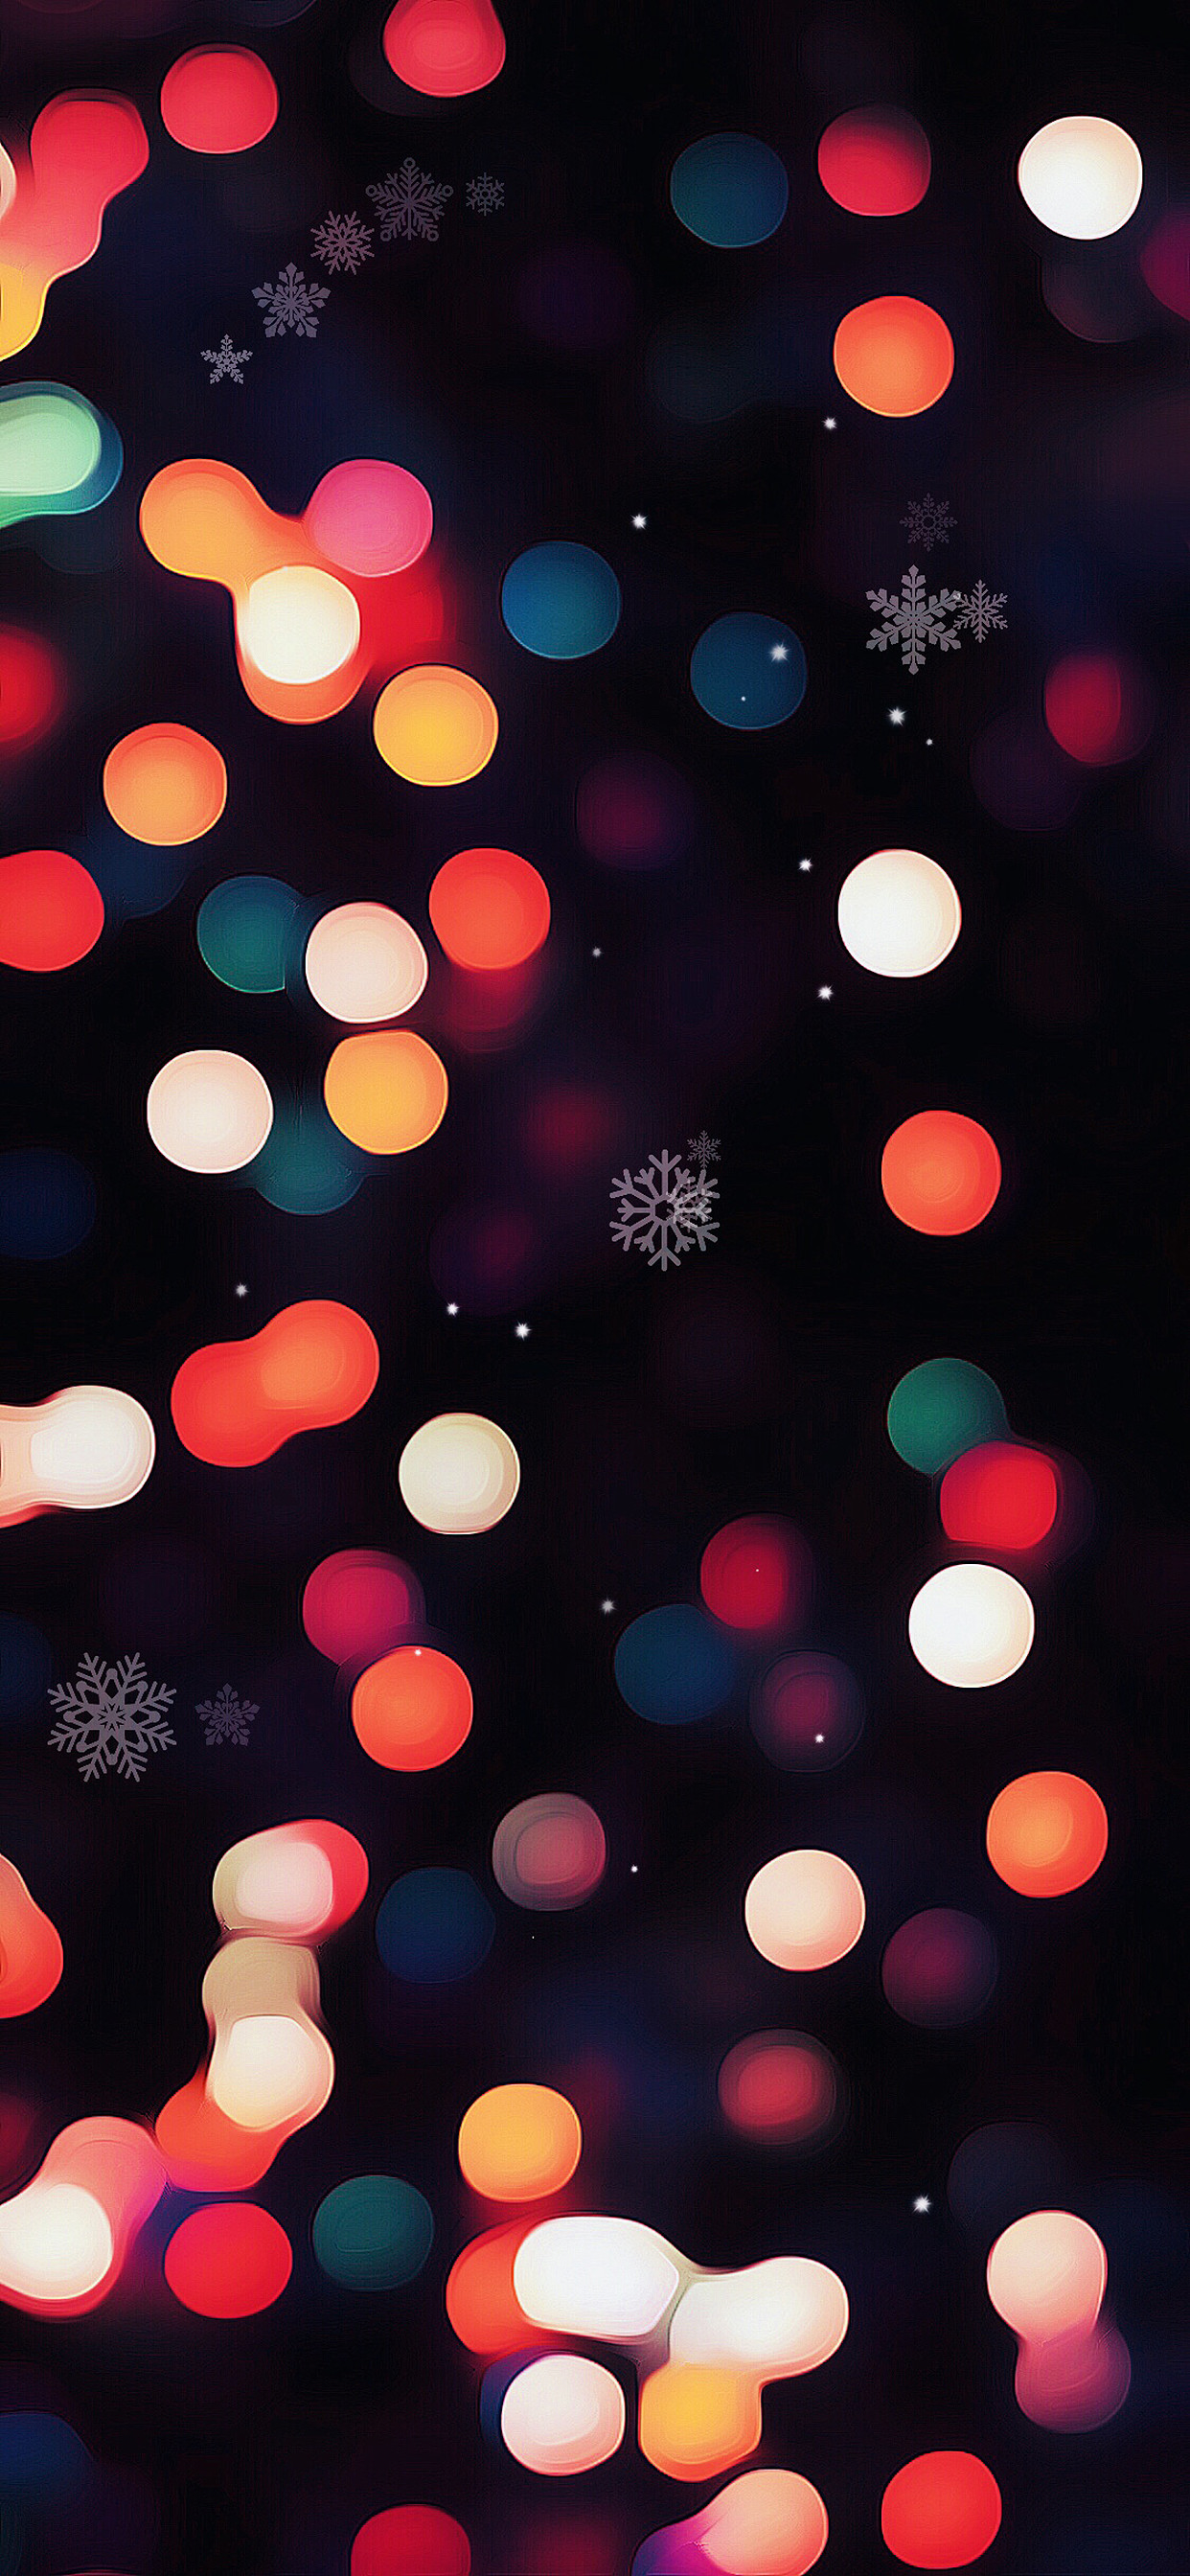 Christmas Lights iPhone Wallpaper (79+ images)